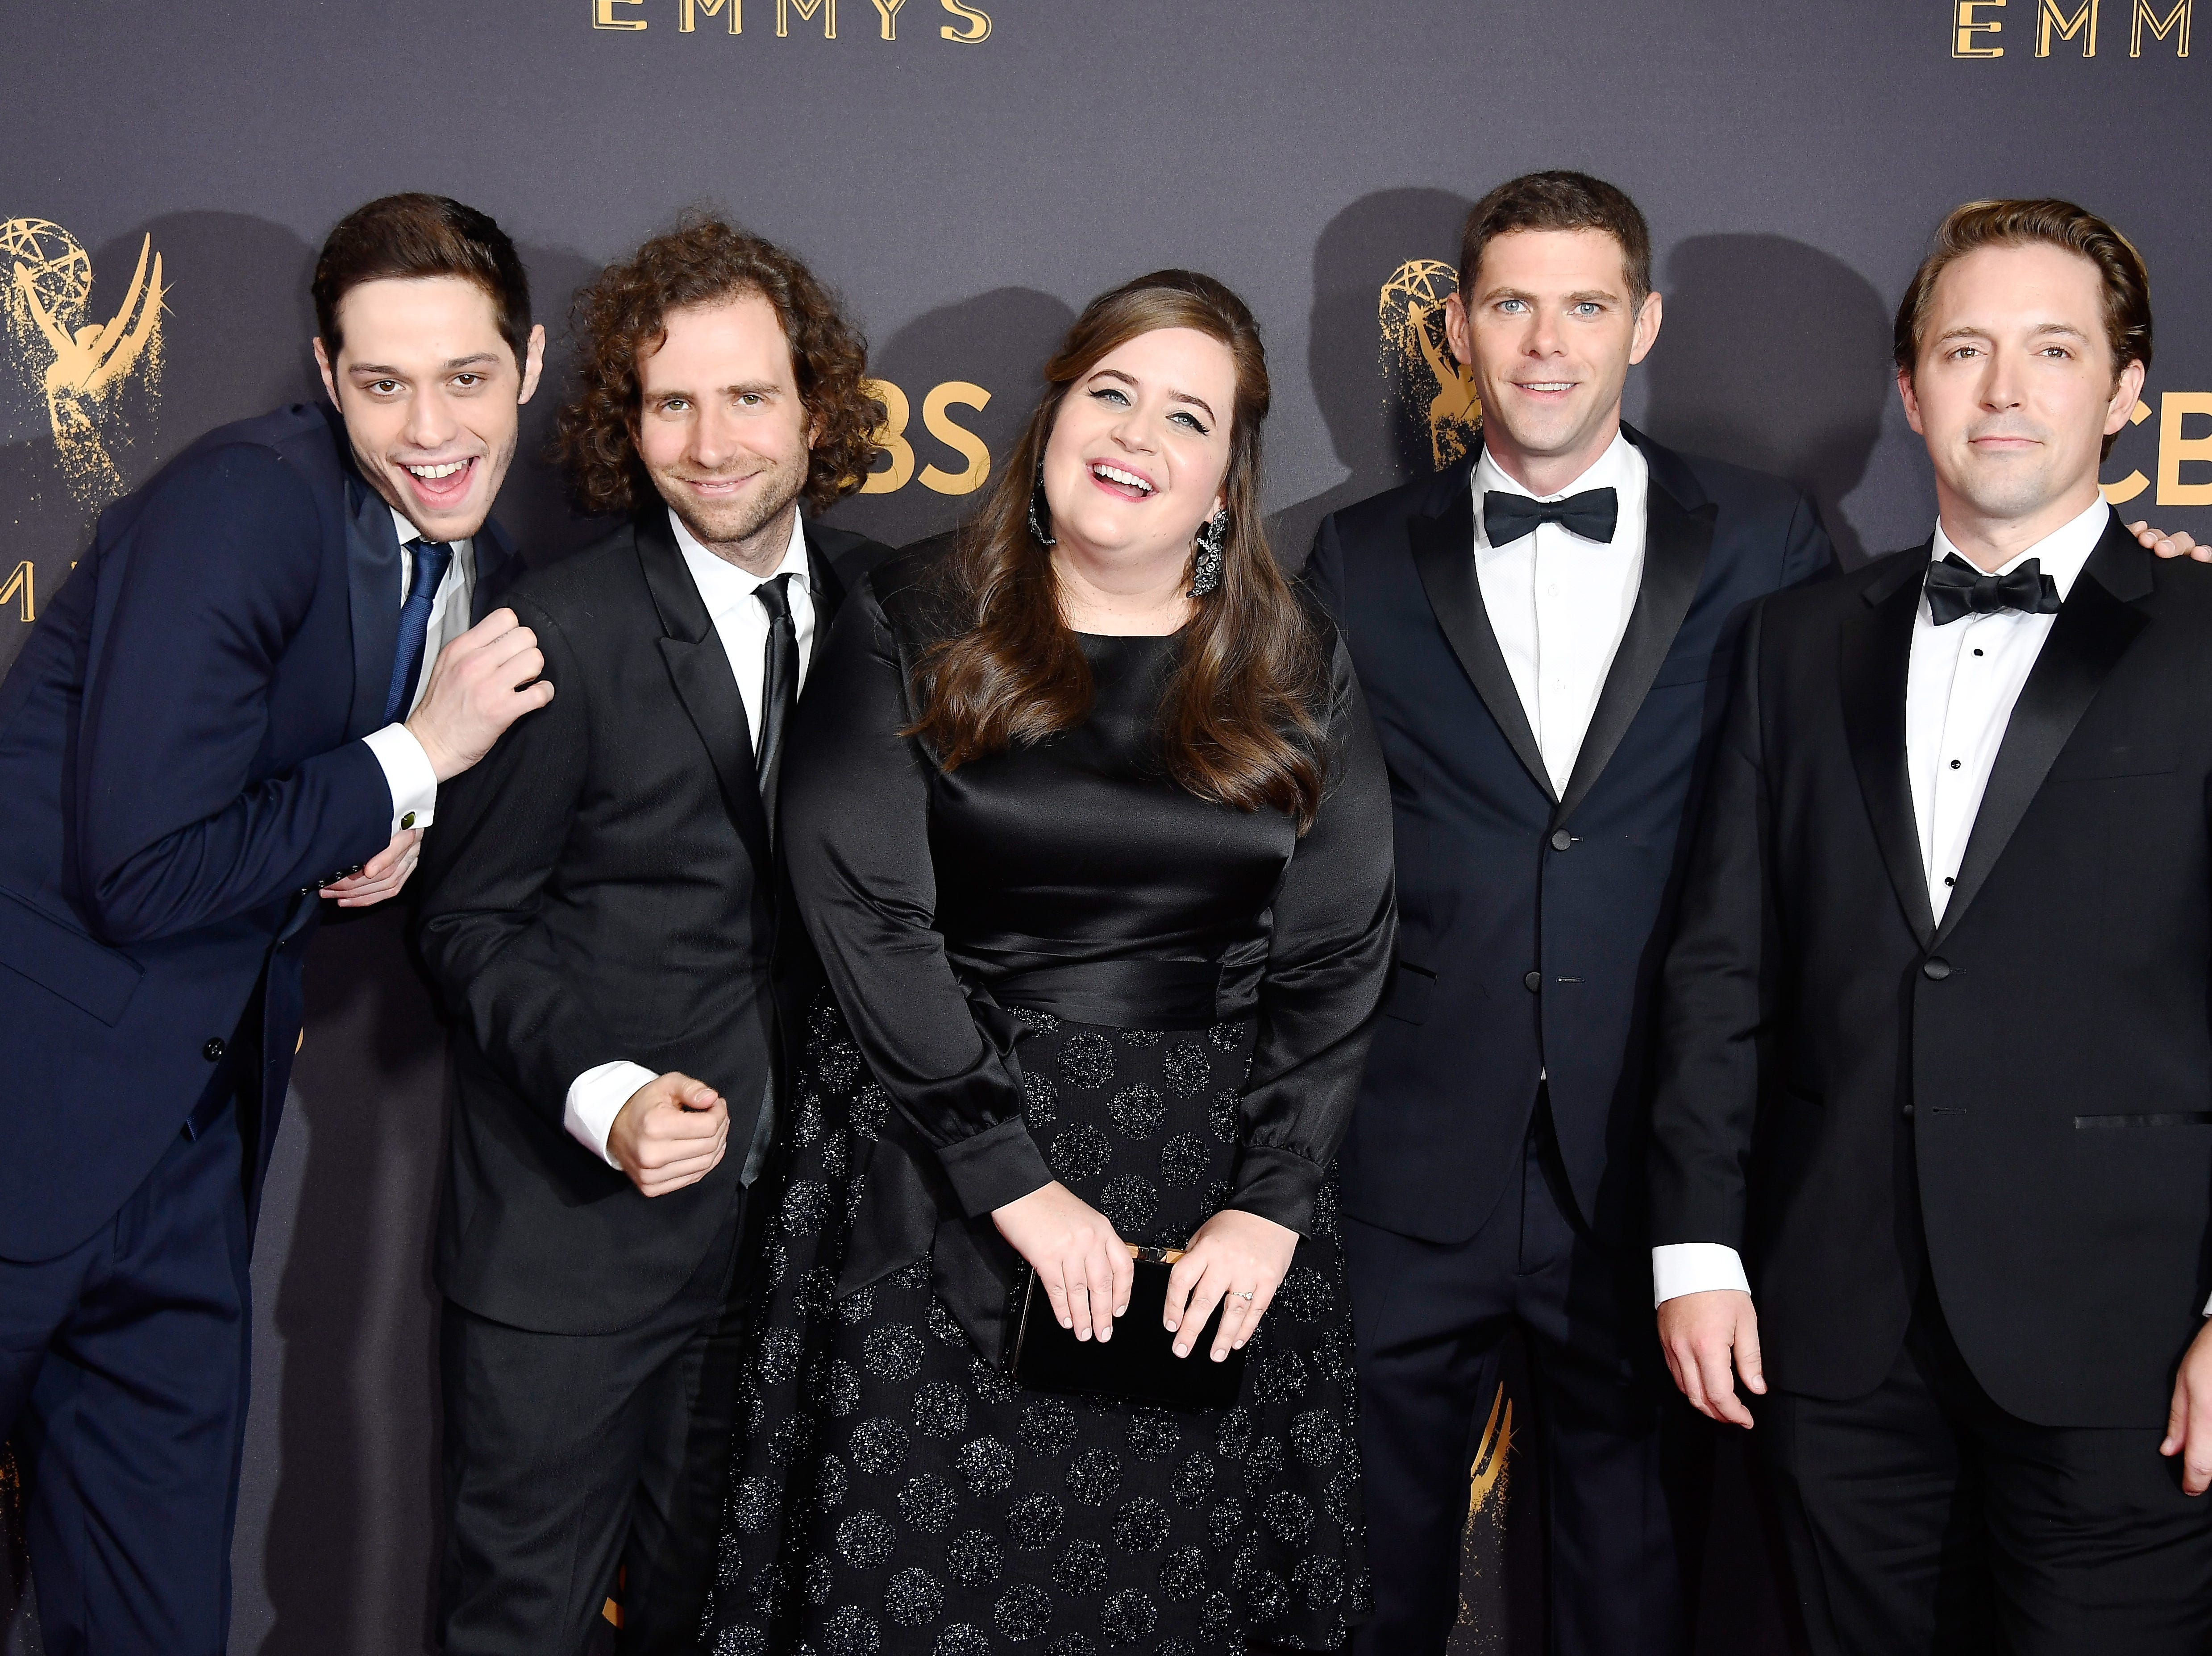 LOS ANGELES, CA - SEPTEMBER 17: (L-R) Actors Pete Davidson, Kyle Mooney, Aidy Bryant, Mikey Day and Beck Bennett attend the 69th Annual Primetime Emmy Awards at Microsoft Theater on September 17, 2017 in Los Angeles, California.  (Photo by Frazer Harrison/Getty Images) ORG XMIT: 775039466 ORIG FILE ID: 848569820